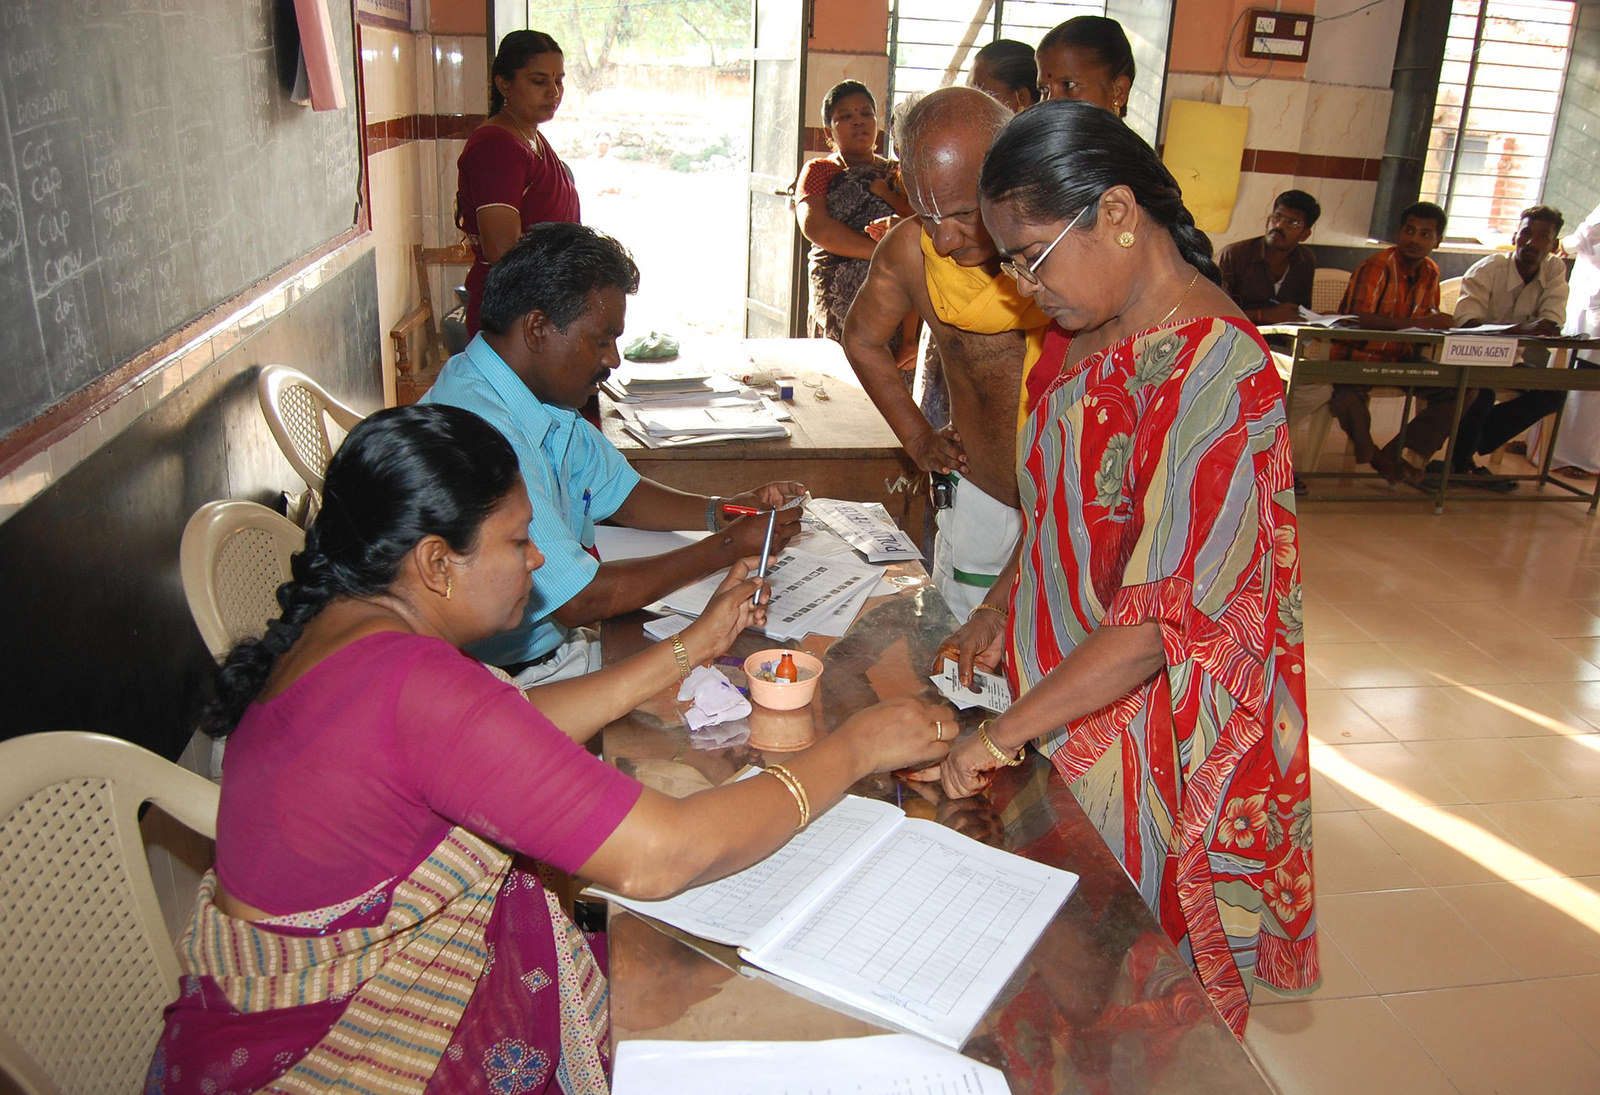 Polling officer administering indelible ink at the finger of a female voter at a polling booth. (Source: Flickr/Public.Resource.Org)